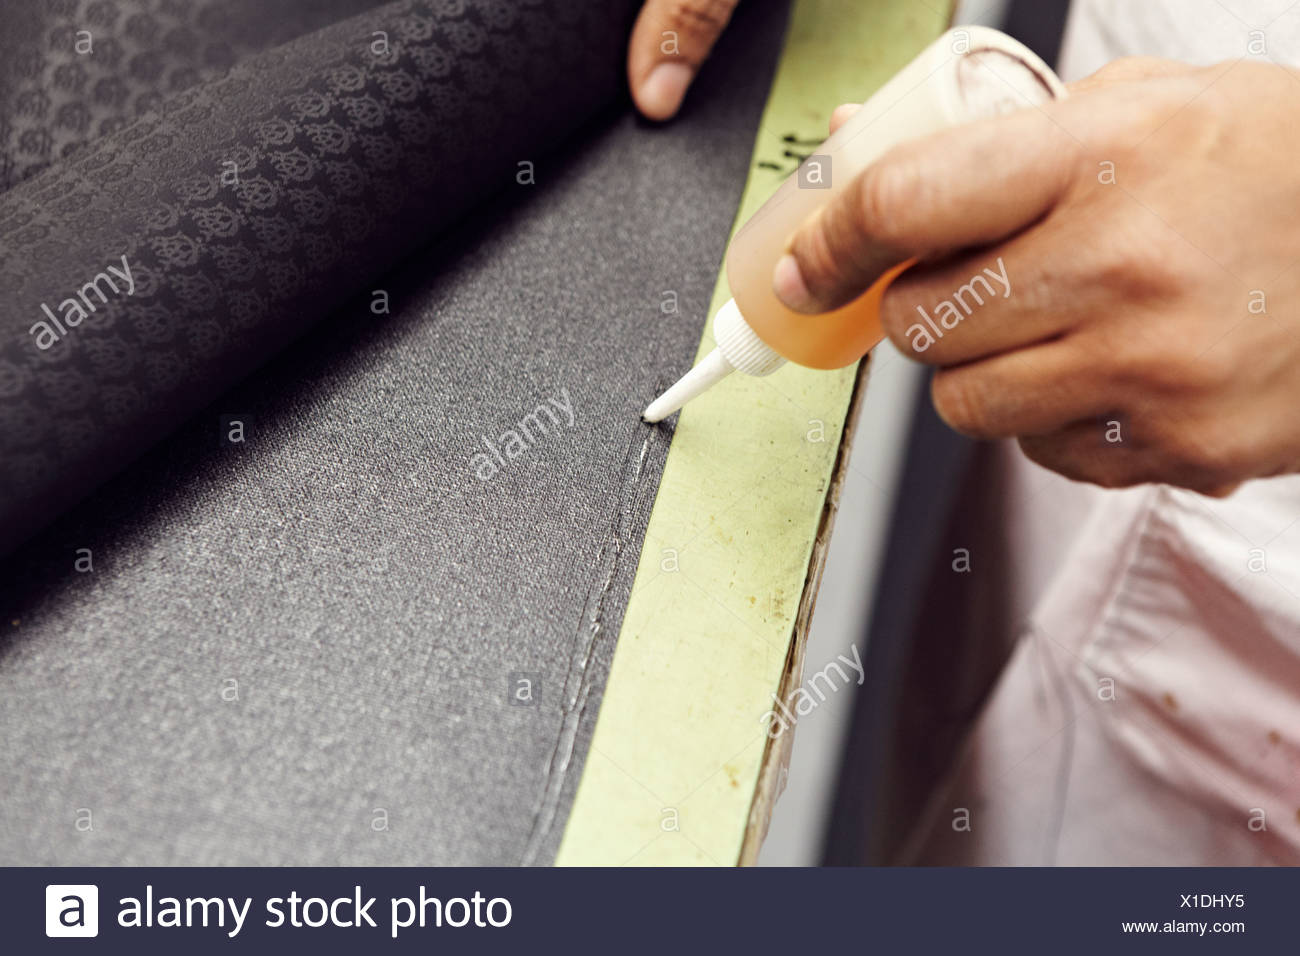 Close up of hands gluing fabric - Stock Image